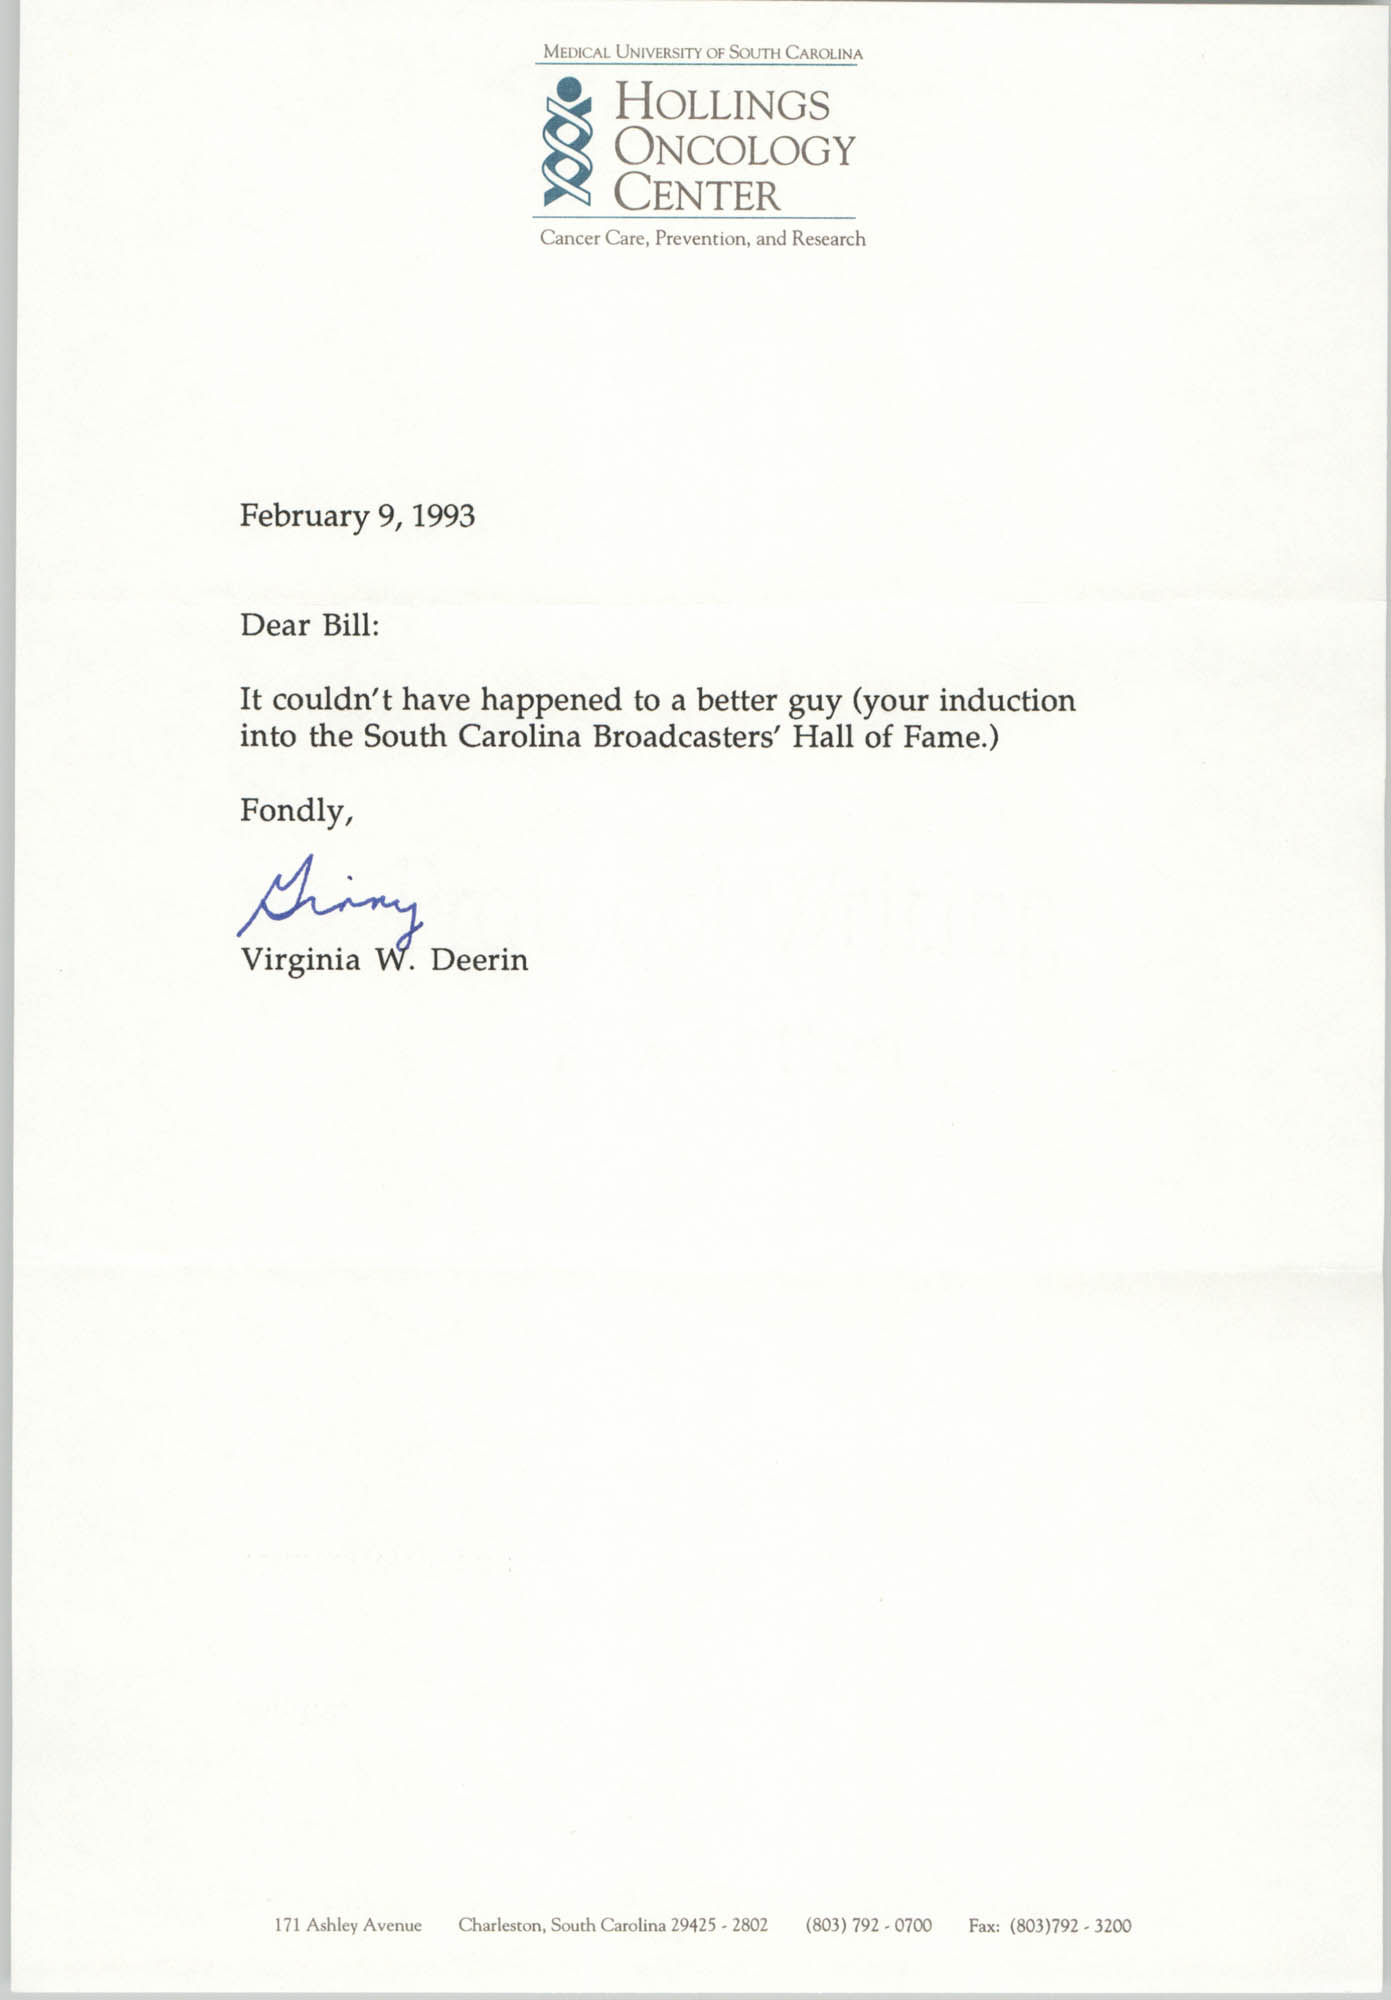 Letter from Virginia W. Deerin to William Saunders, February 9, 1993